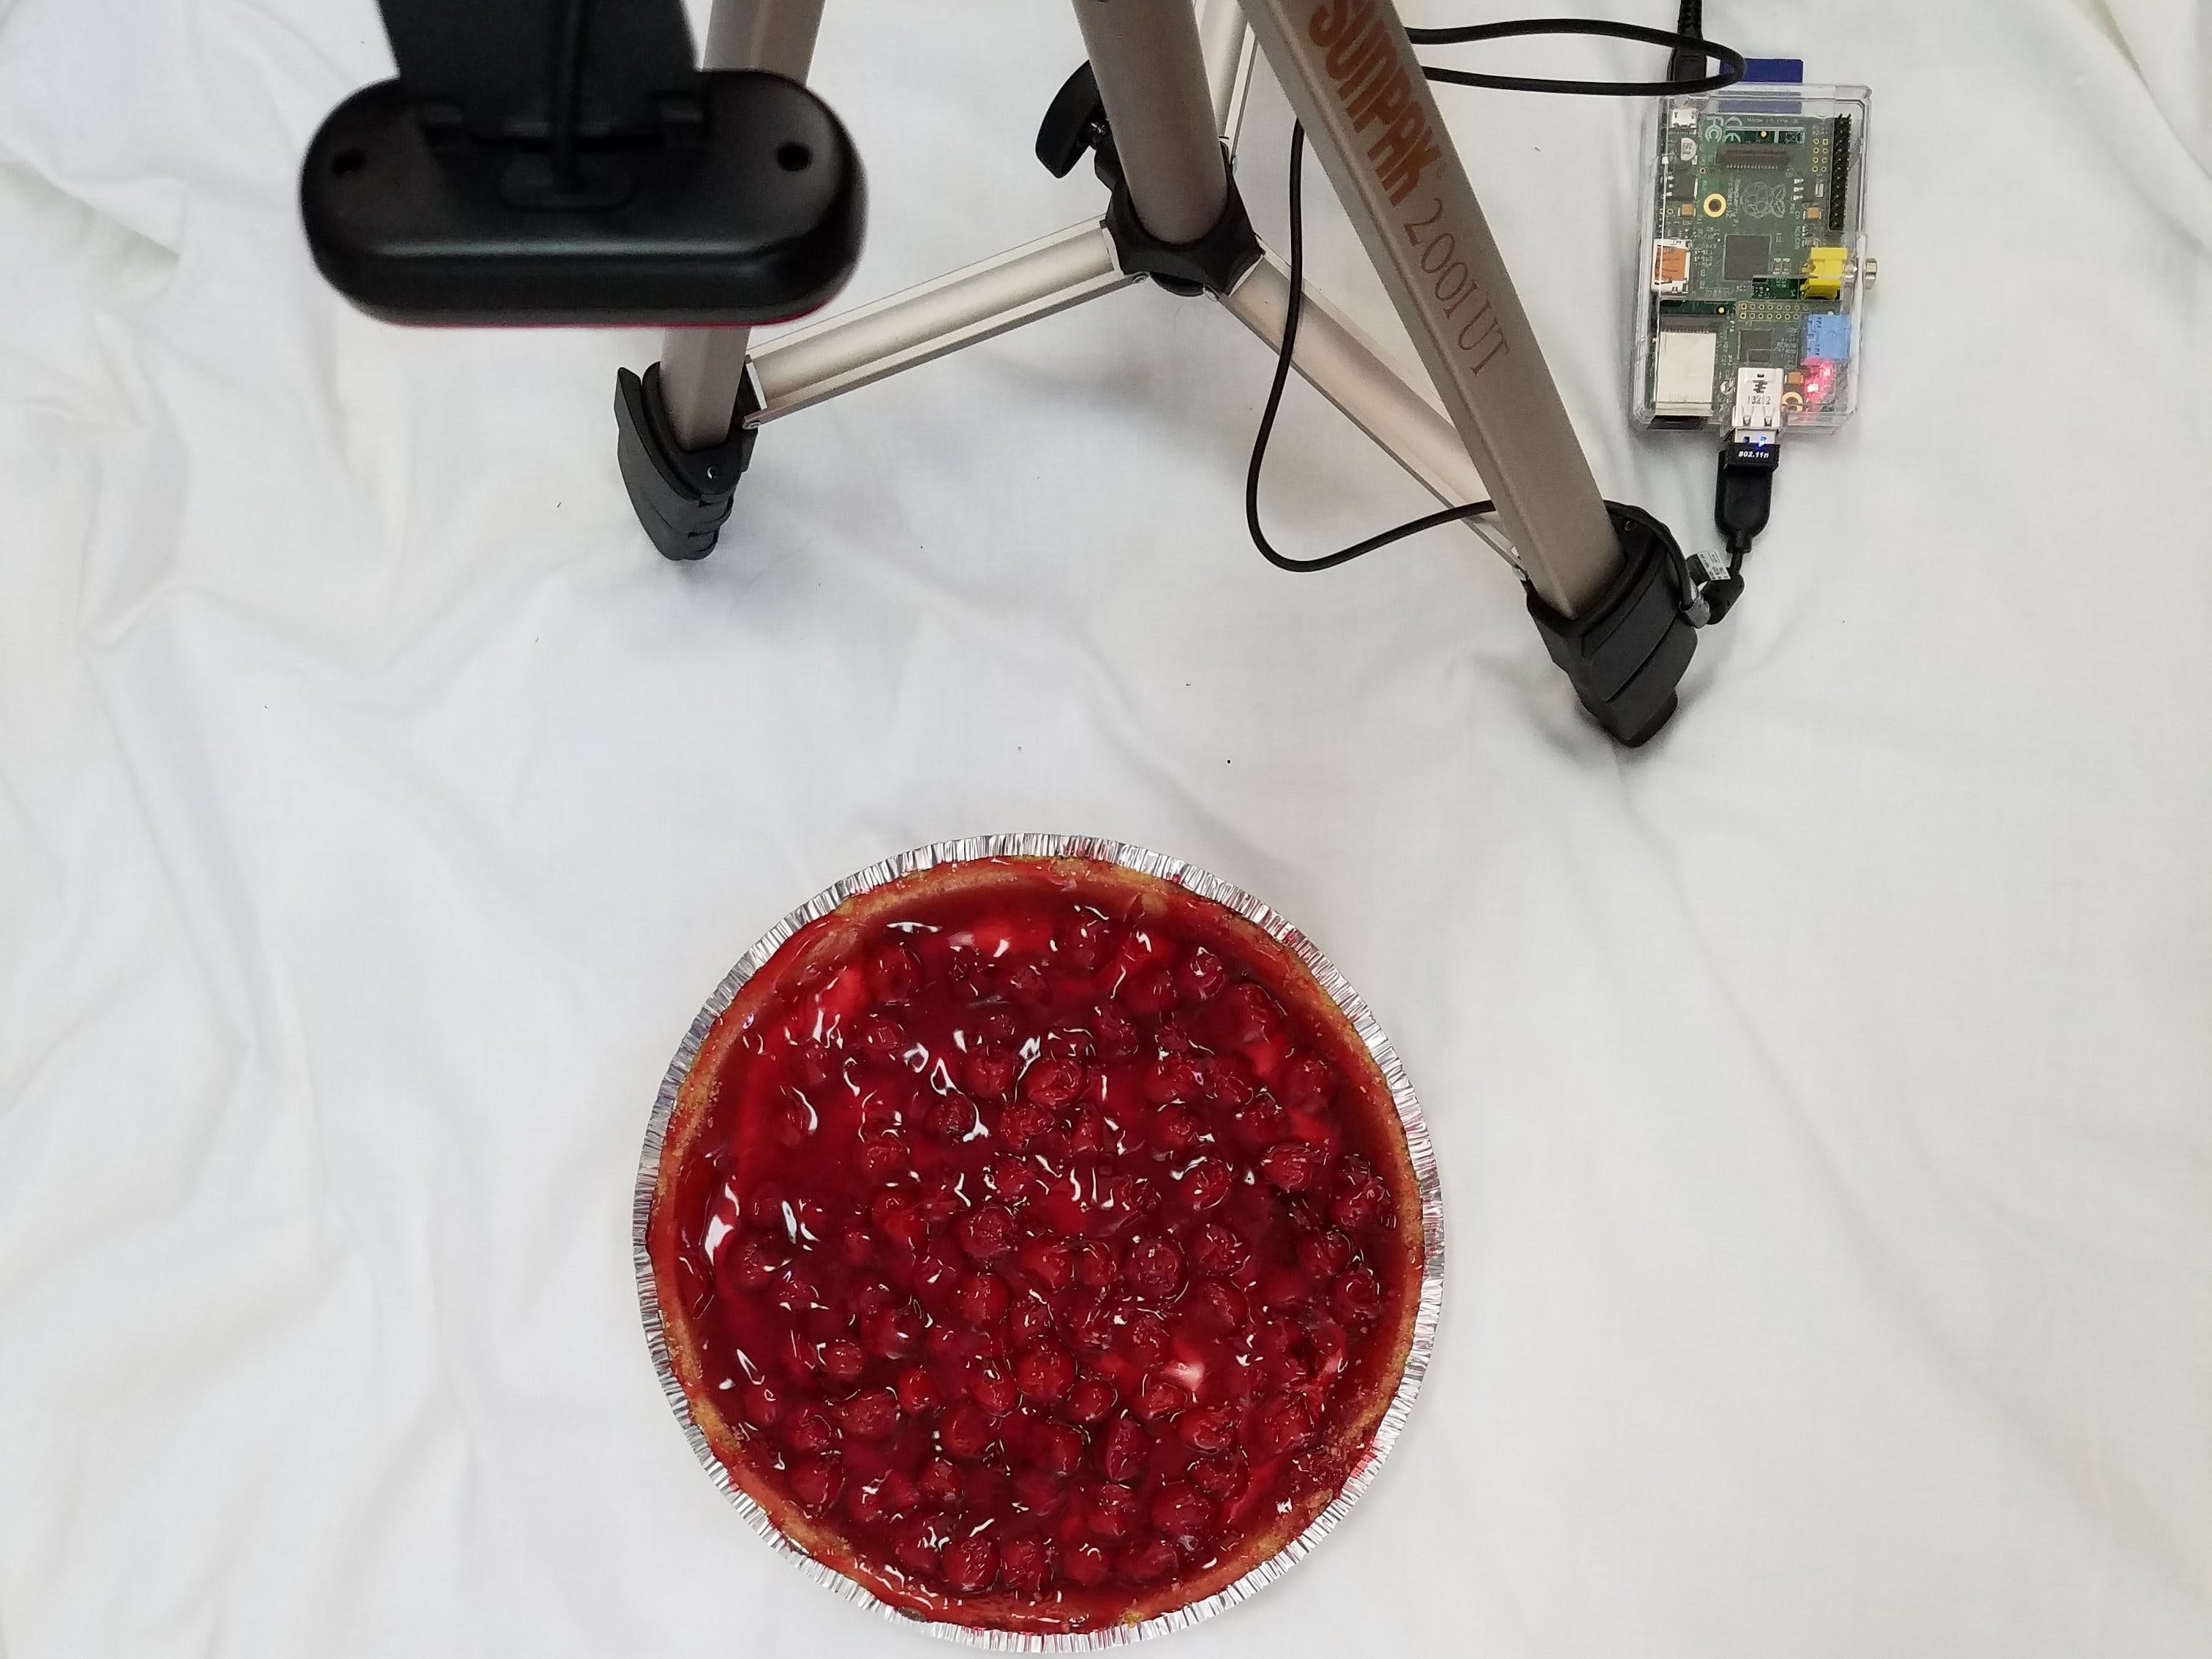 Calculate Pi with a Raspberry Pi and a circular Cherry Pie.